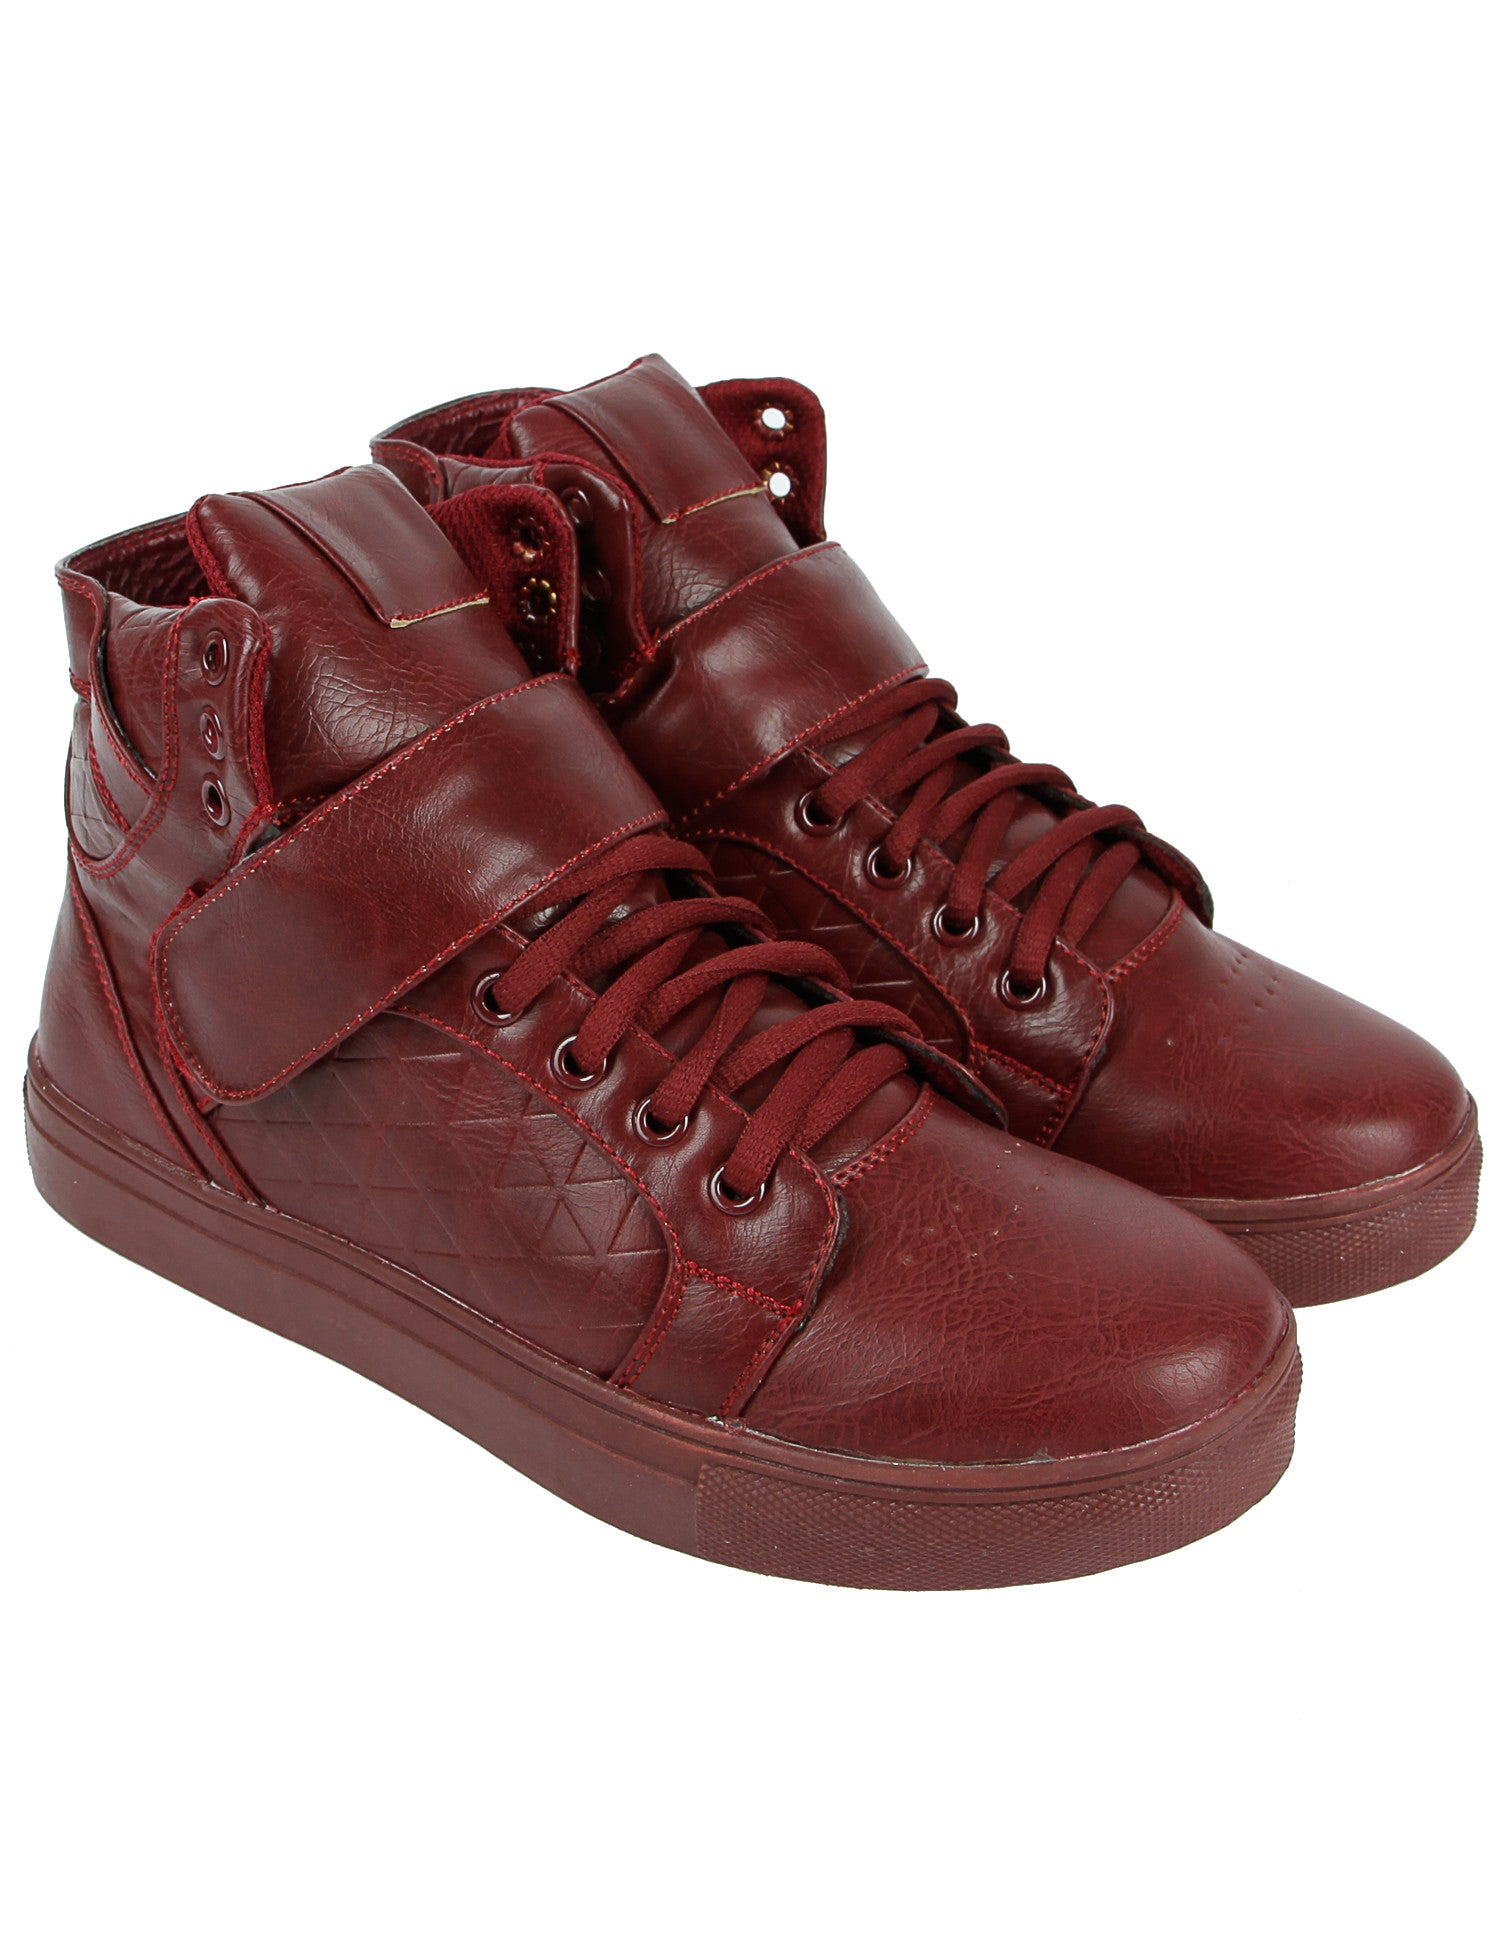 GOV Denim Shoes 008-2BO Burgundy Red